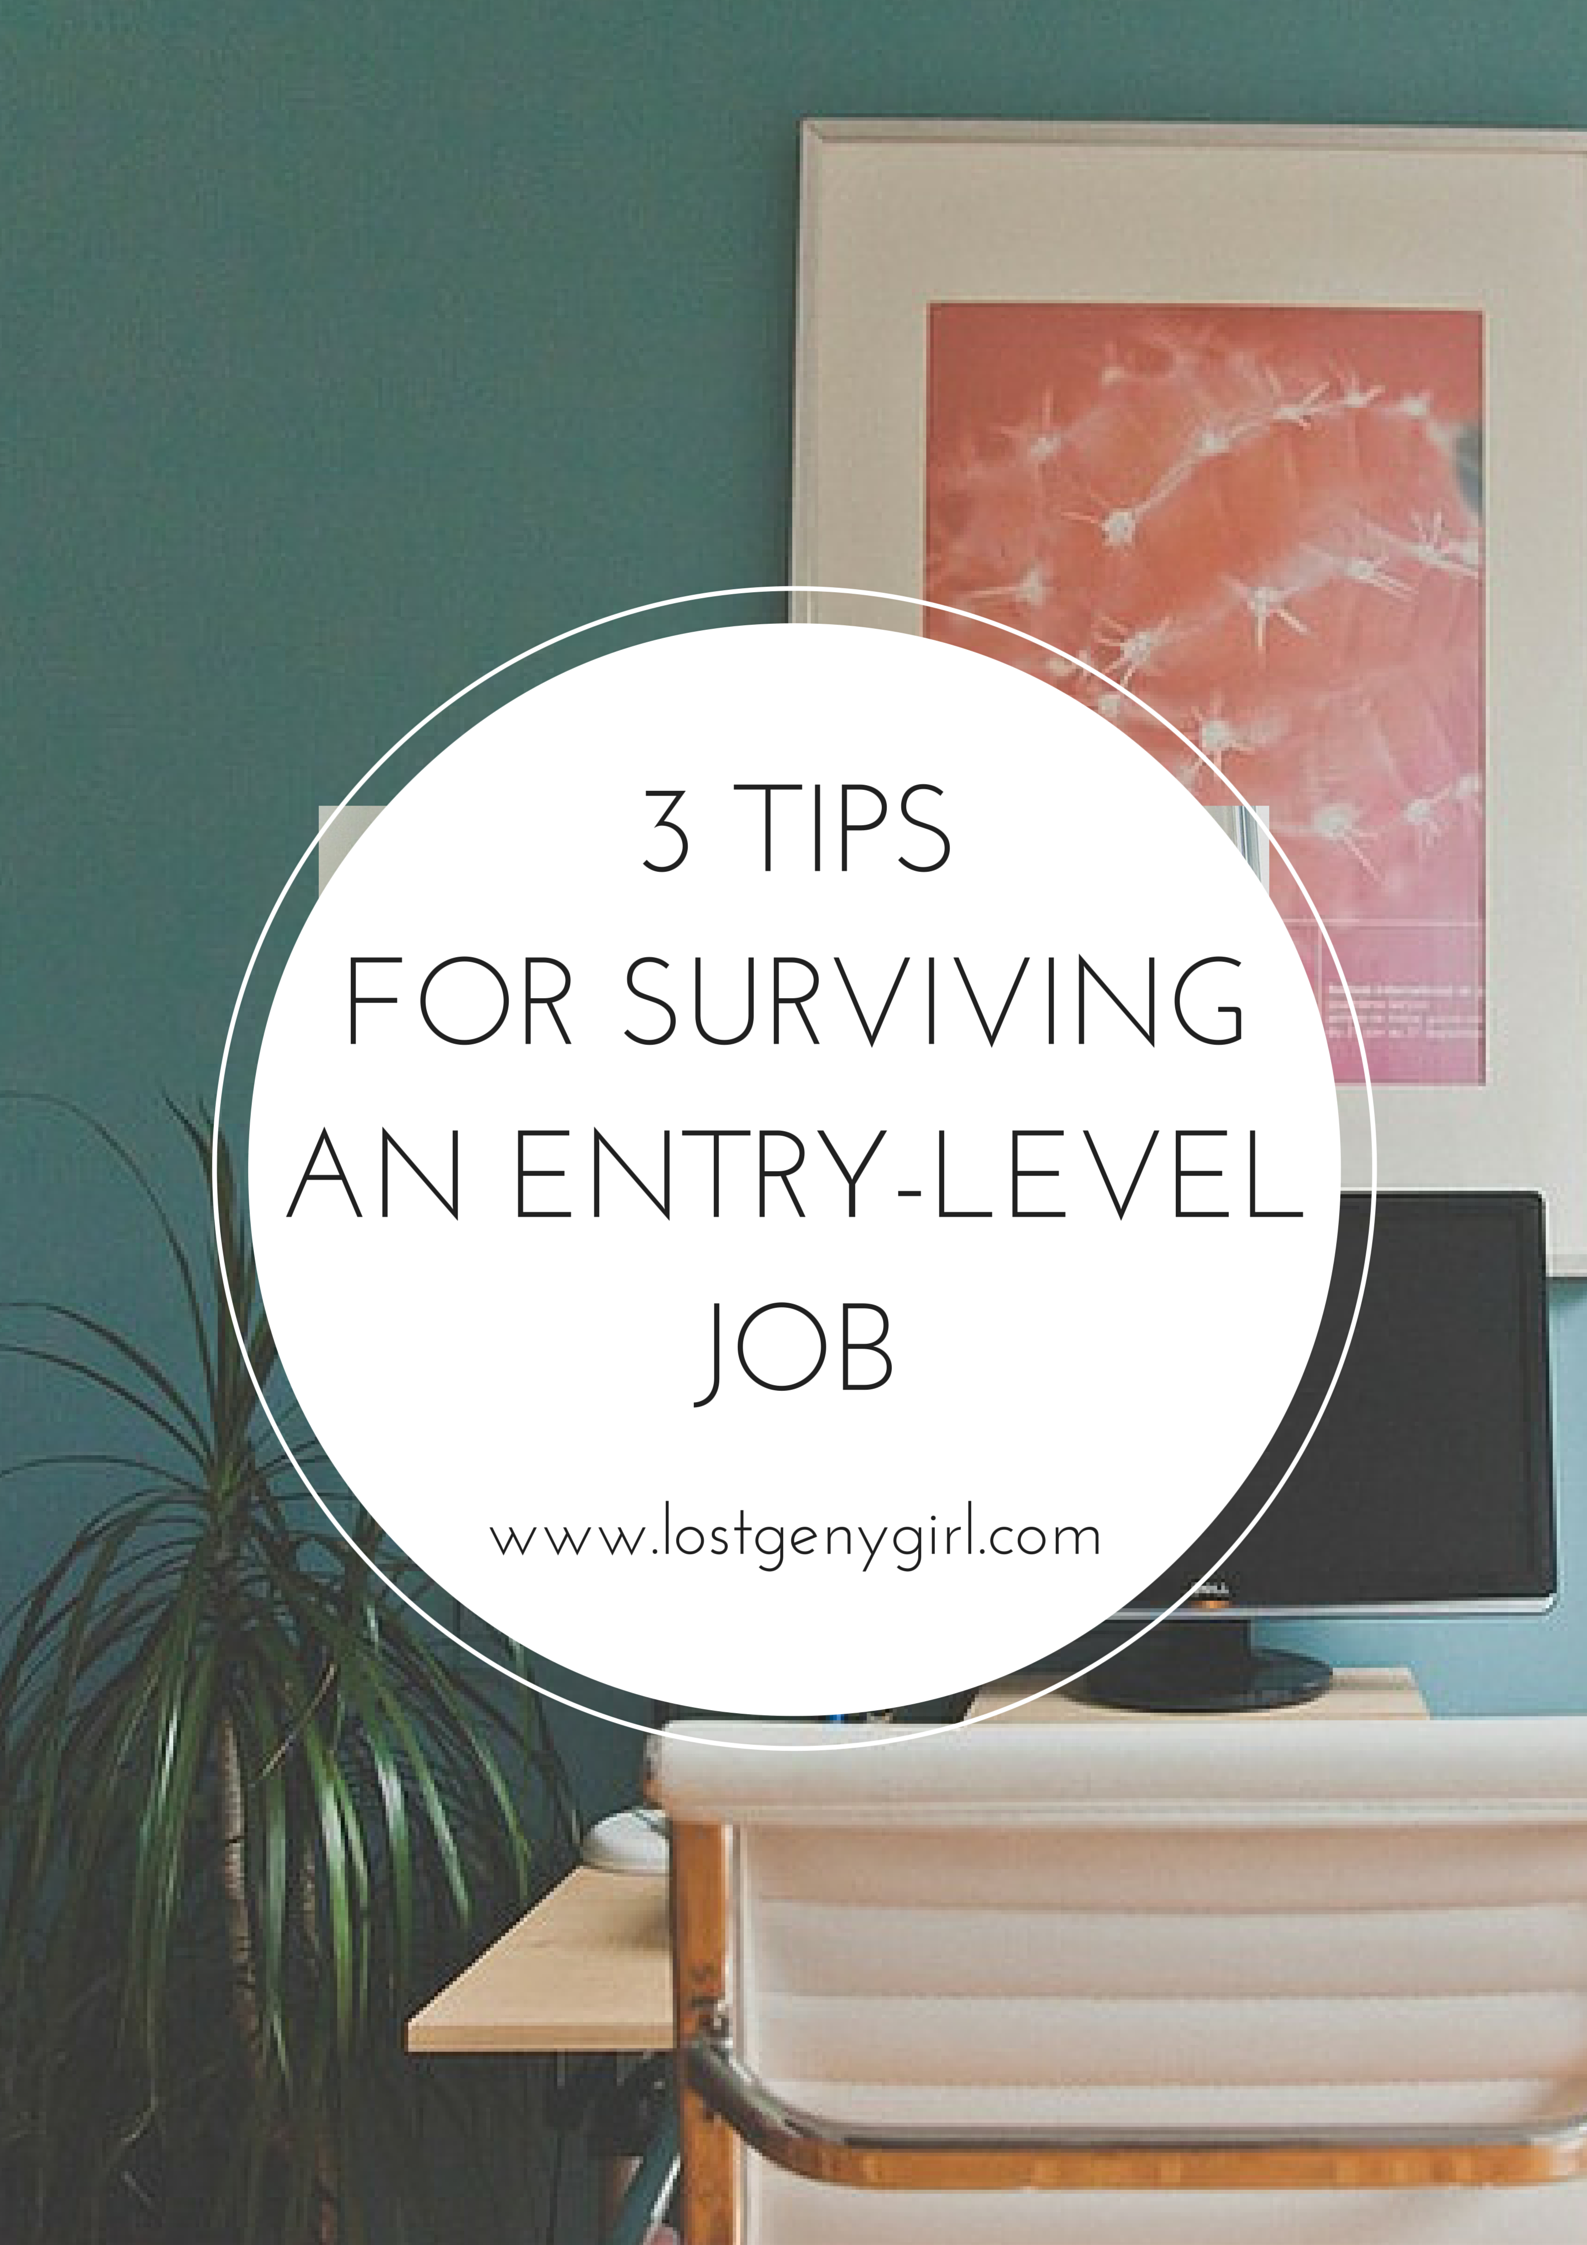 3 Tips For Surviving An Entry-Level Job